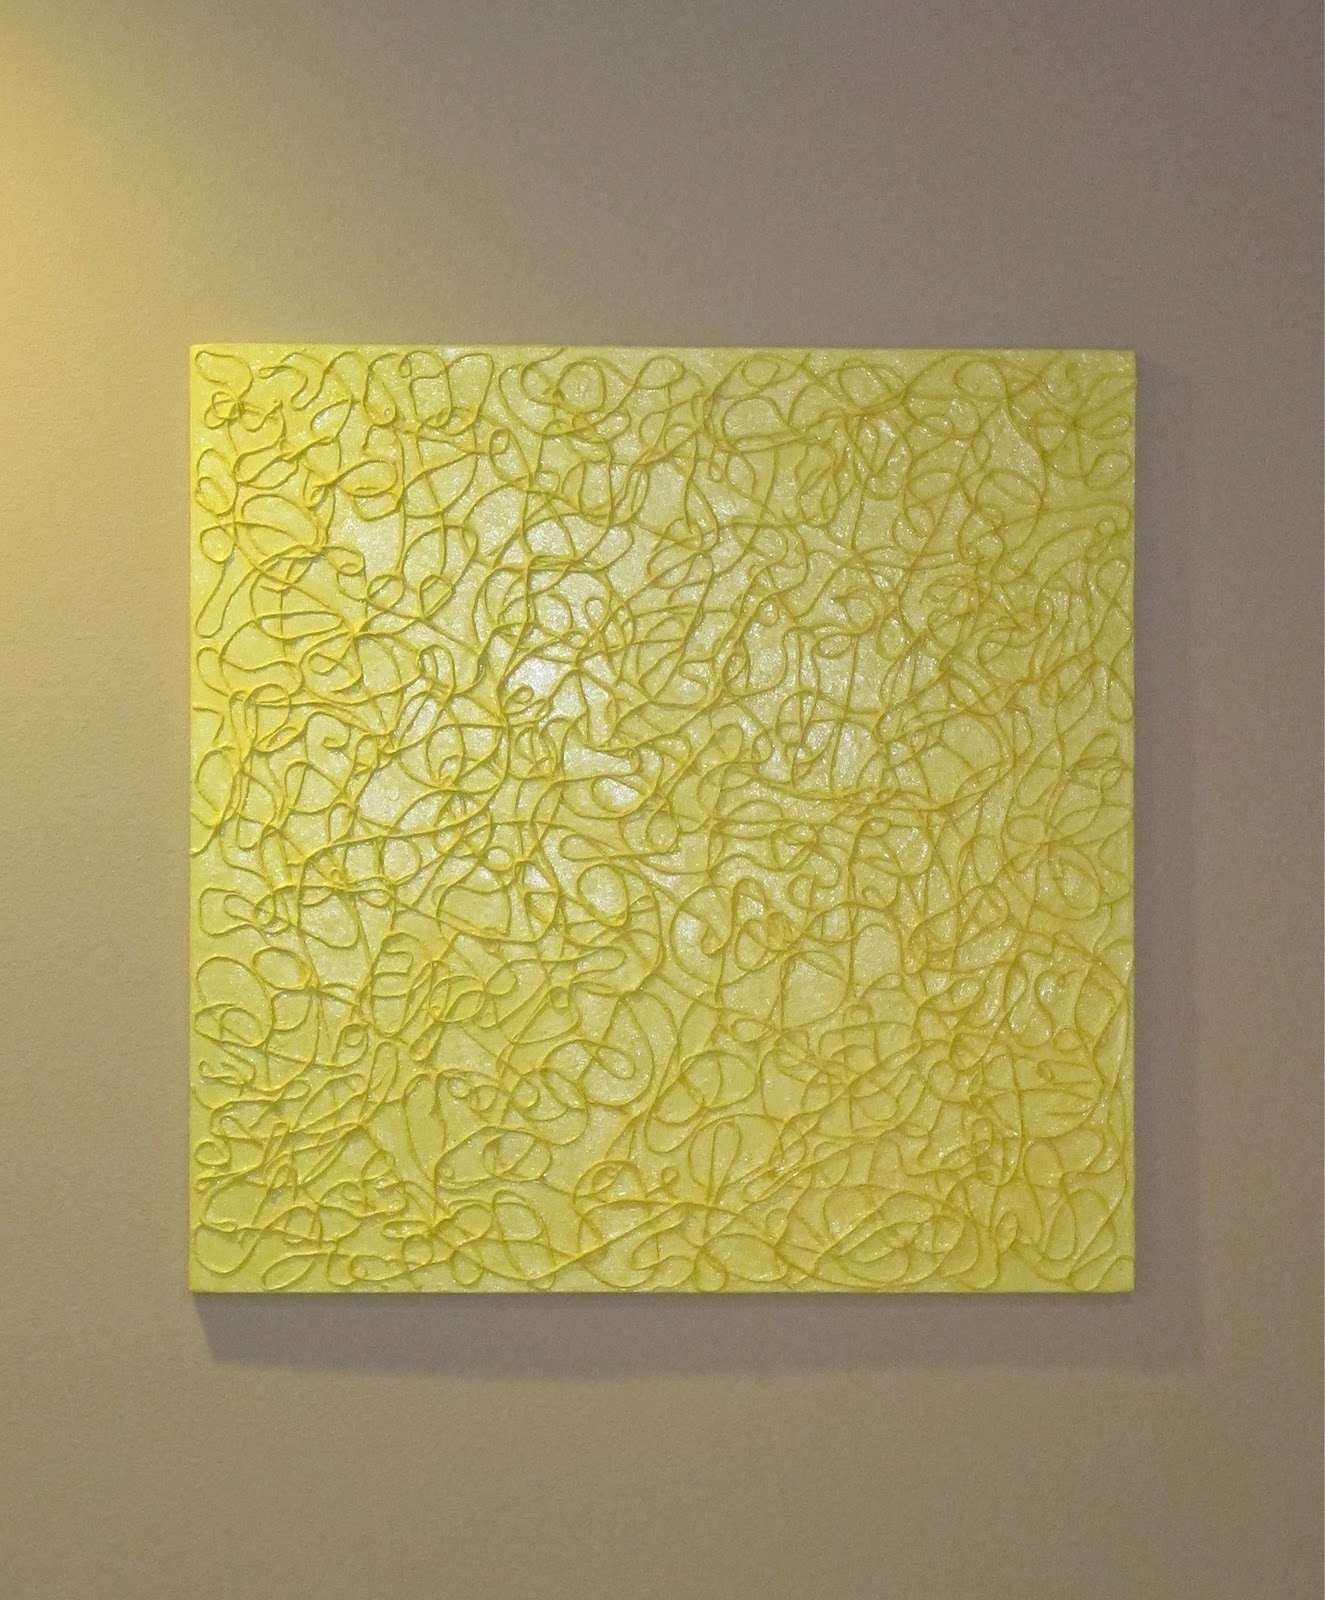 BluKatKraft: DIY Simple Textured Wall Art with String!